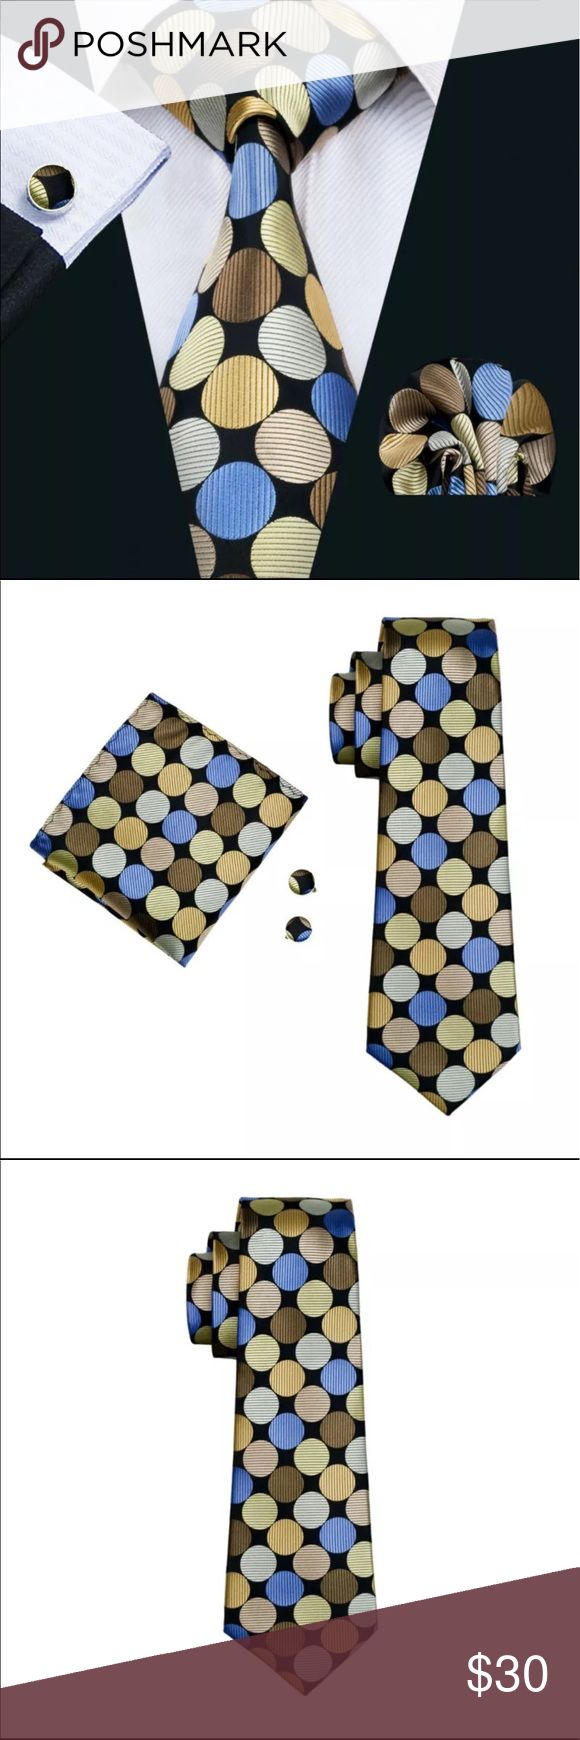 Men's 100% Silk High Quality Novelty Tie BUY NOW Gentleman's Shop Fashion Men`s Novelty 100% Silk Necktie Hanky Cufflink Set For Men`s Wedding Party Groom Business Queen Eather Etc Accessories Ties